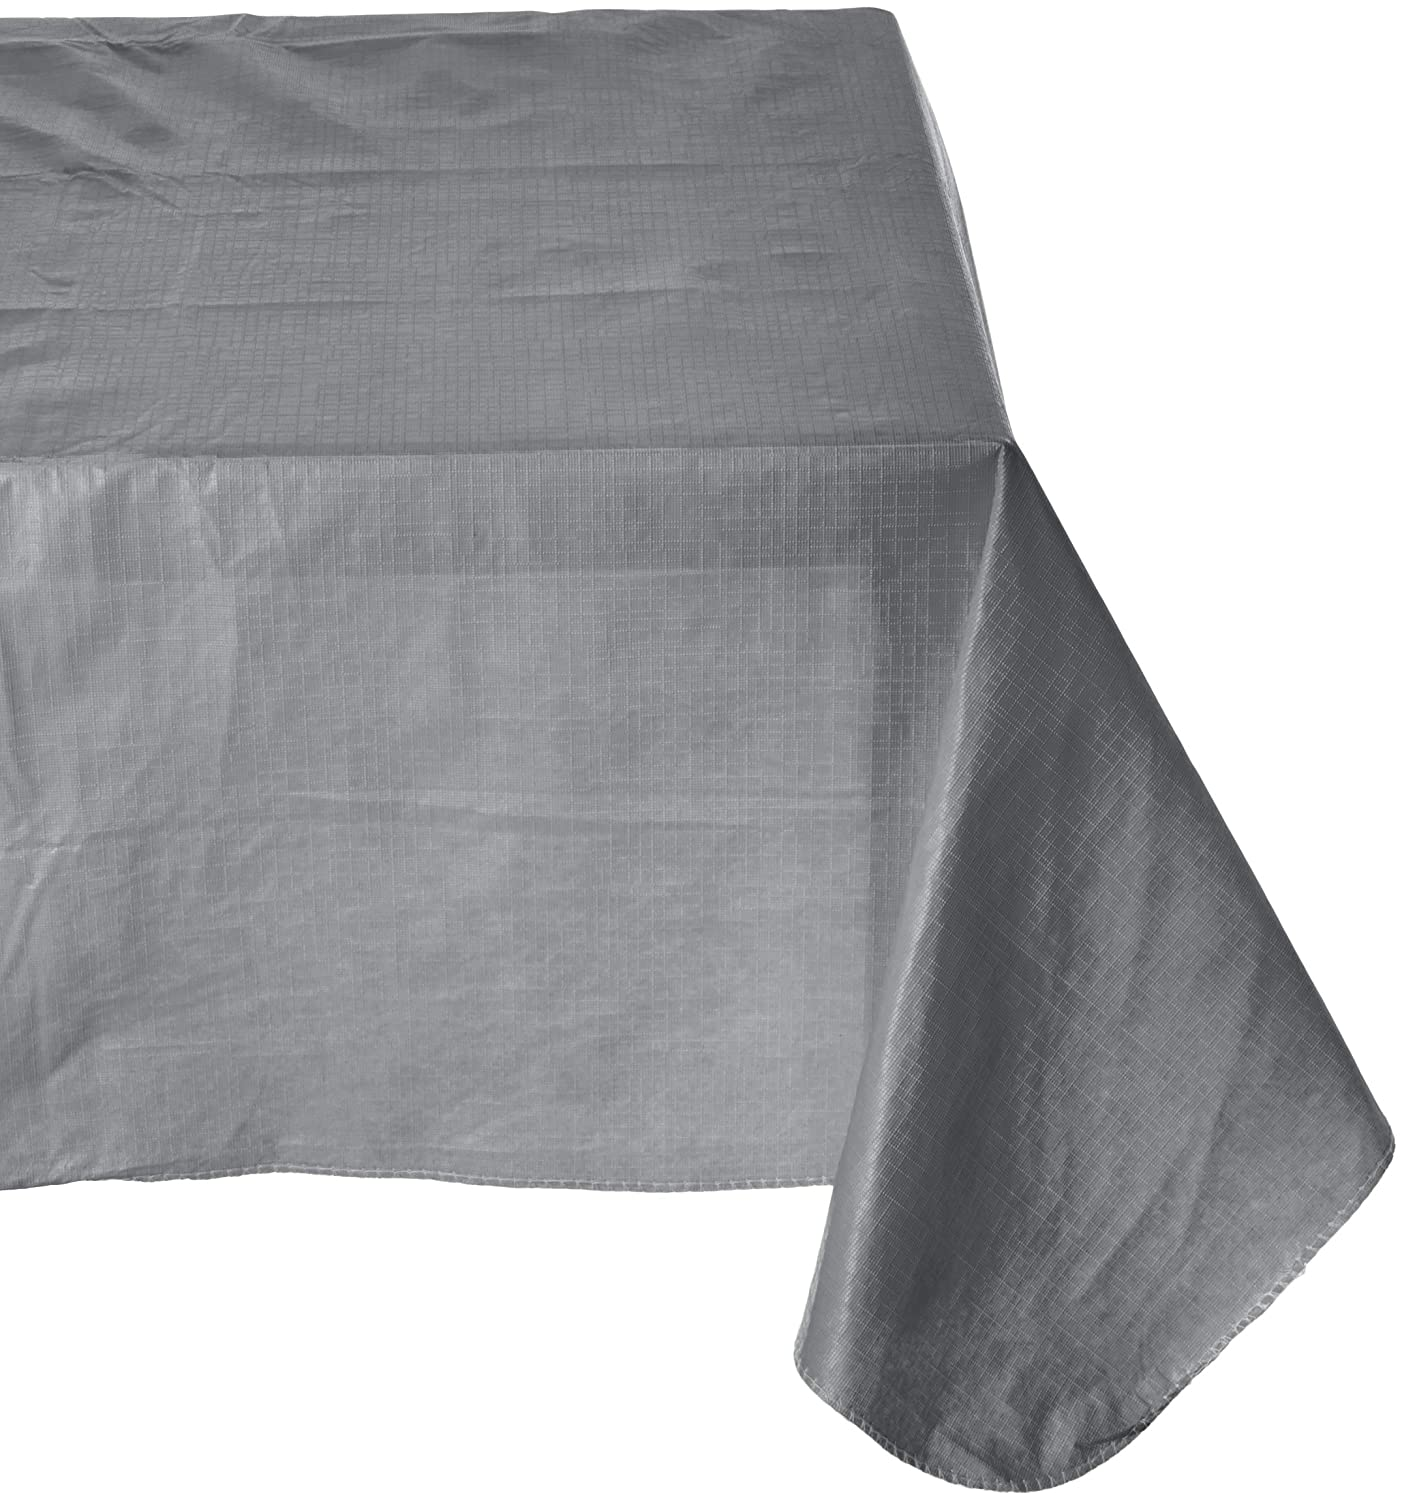 Amscan Durable Indoor Outdoor Flannel Backed in Solid Color Silver Vinyl 52 x 90 Others Party Supplies 6 Piece